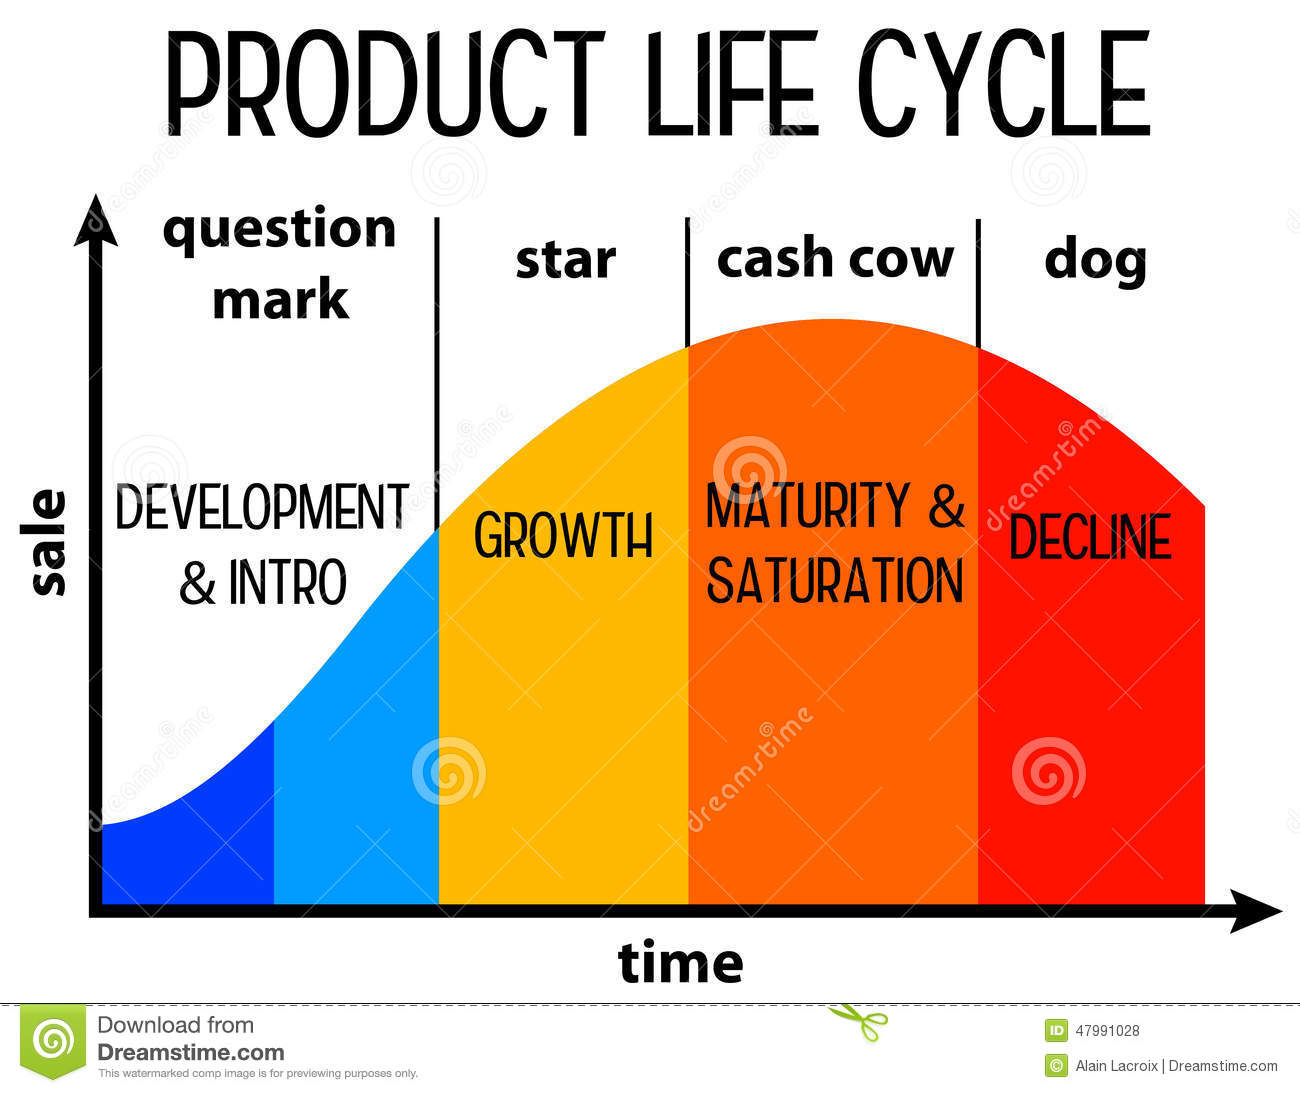 production life cycle begining - 800×617